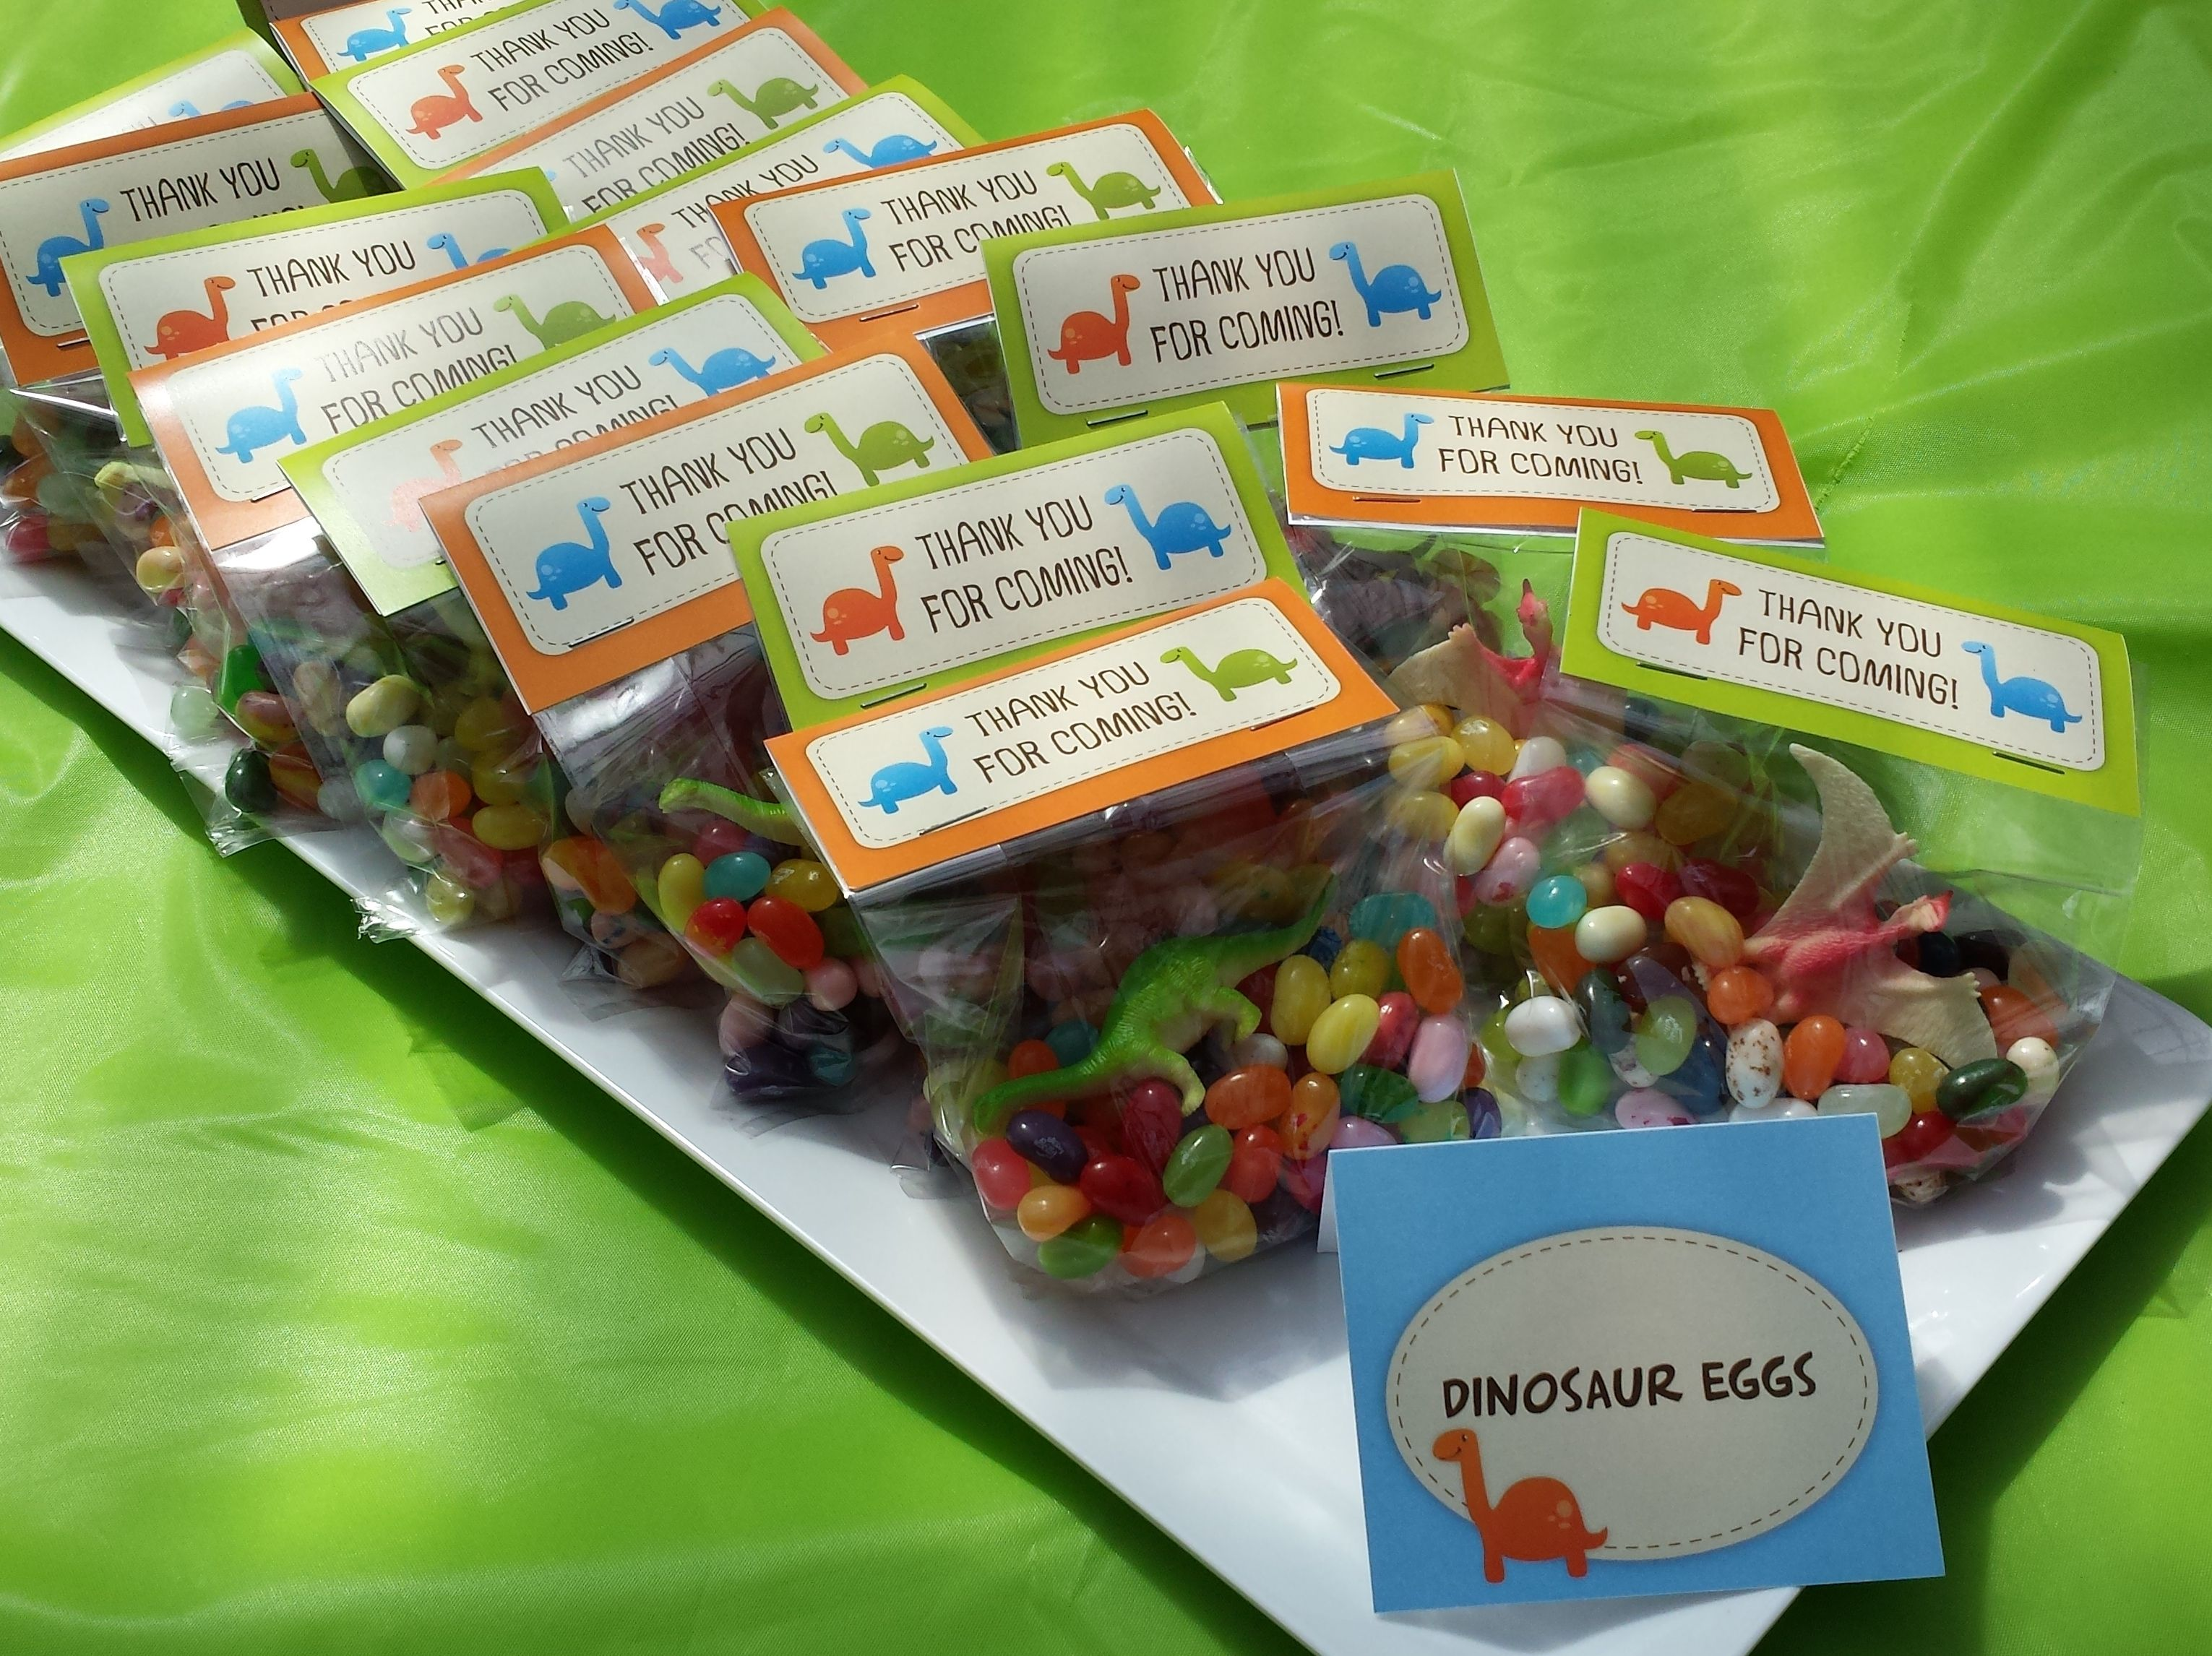 Party Bags Full Of Dinosaur Eggs Jelly Belly Beans Printables By Mypartydesign On Etsy